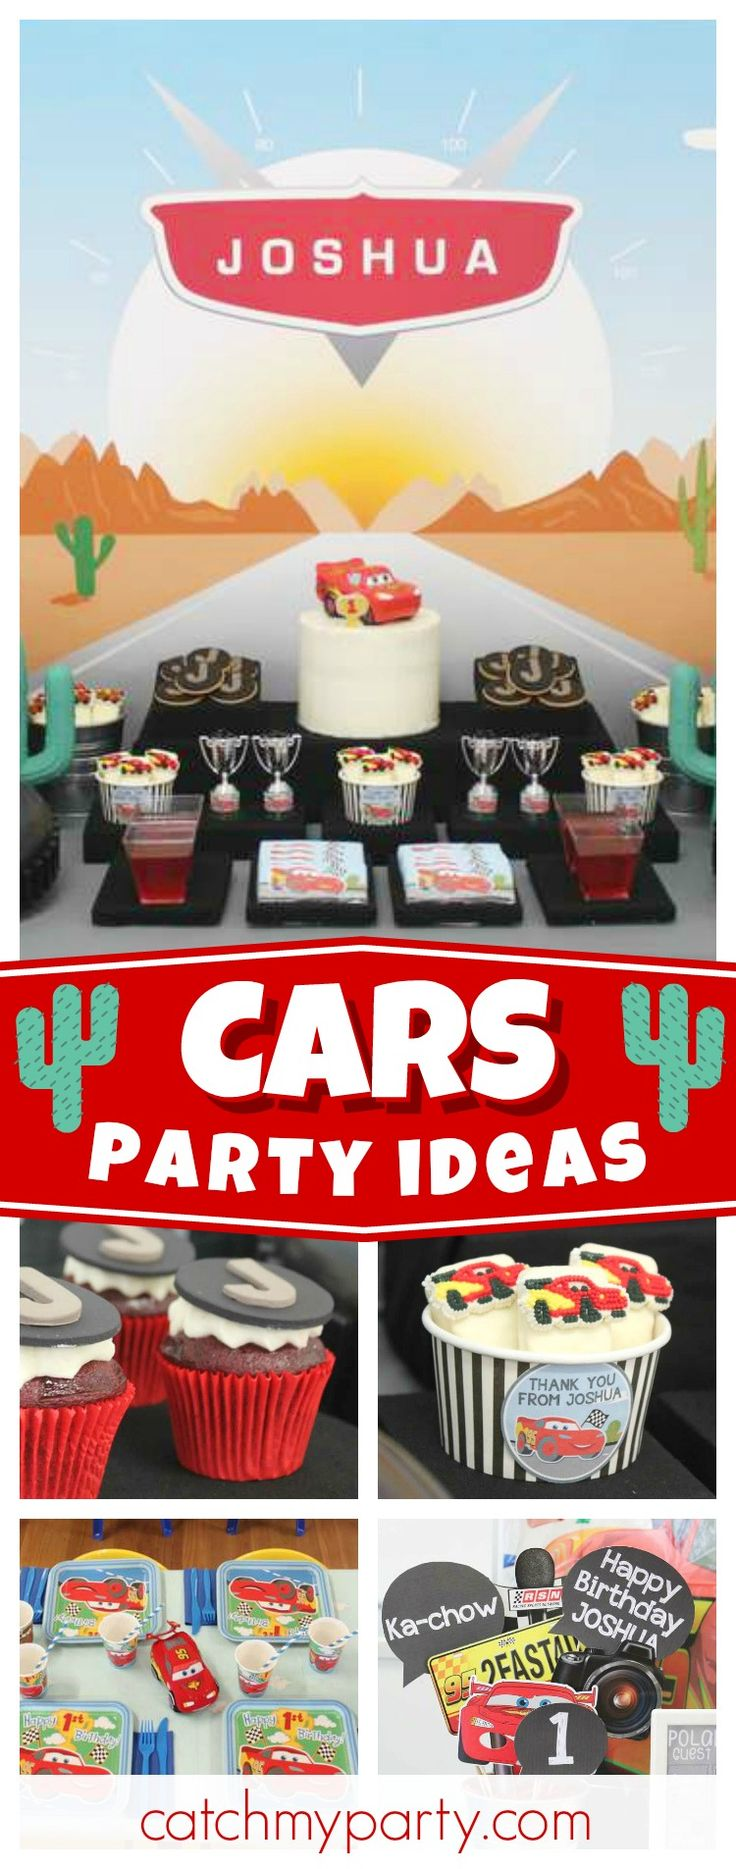 Check out this fun Cars themed birthday party. The dessert table is awesome!! See more party ideas and share yours at CatchMyParty.com